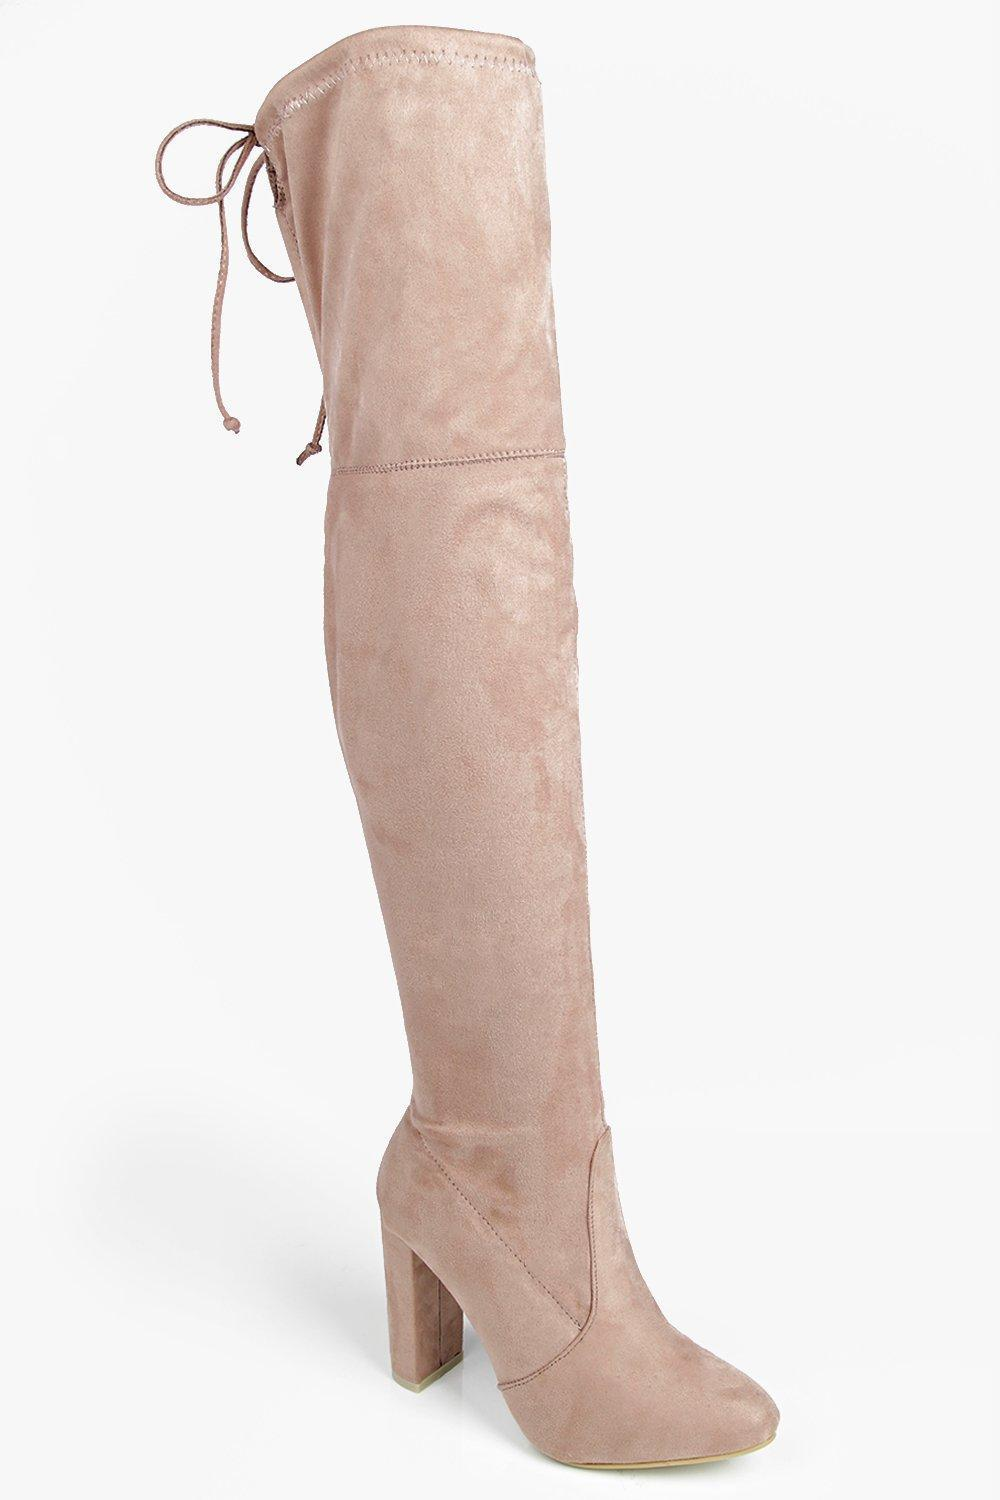 b293c5549626 Lyst - Boohoo Mia Block Heel Lace Up Back Over Knee Boot in Natural